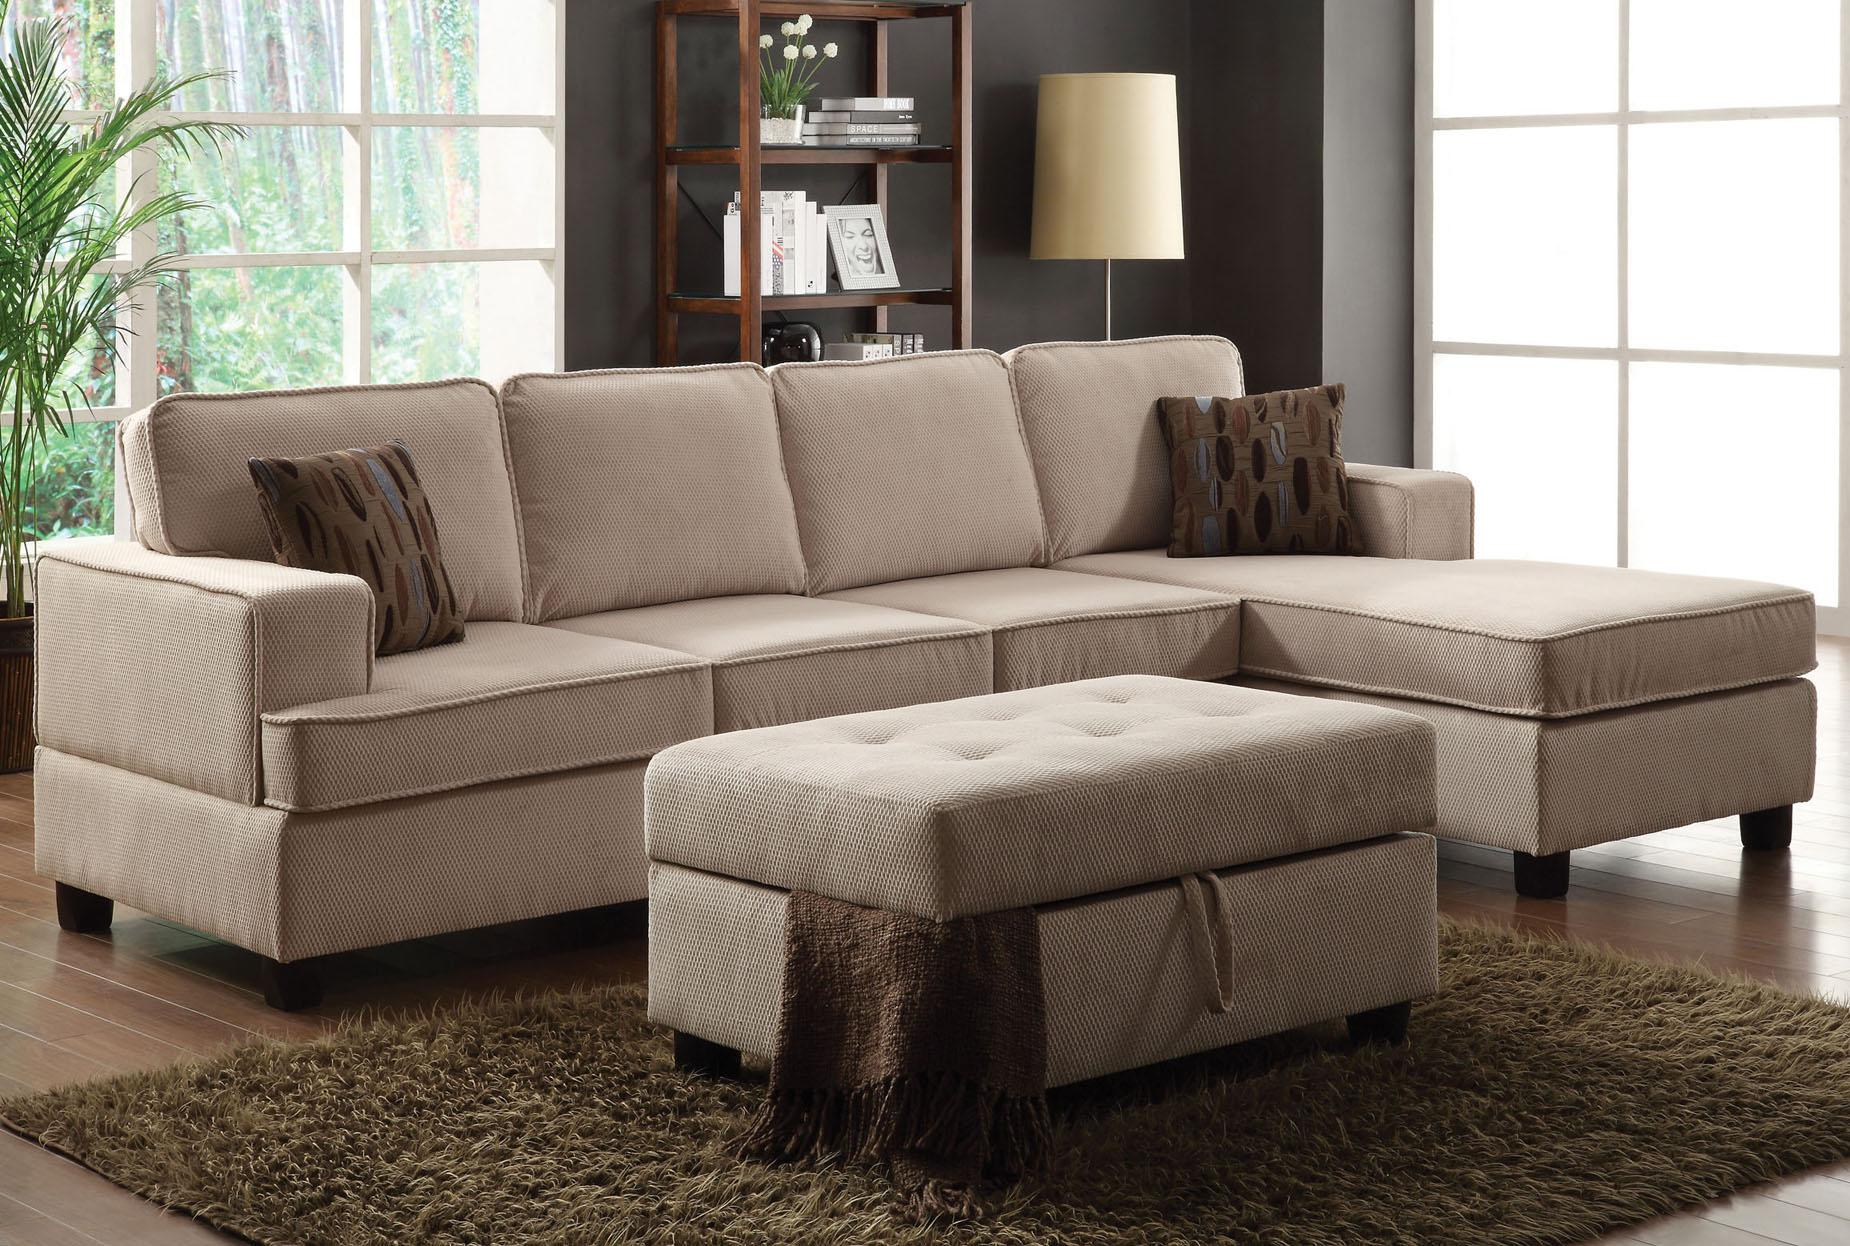 Acme lavenita sectional living room set in wheat for 3 piece living room set cheap